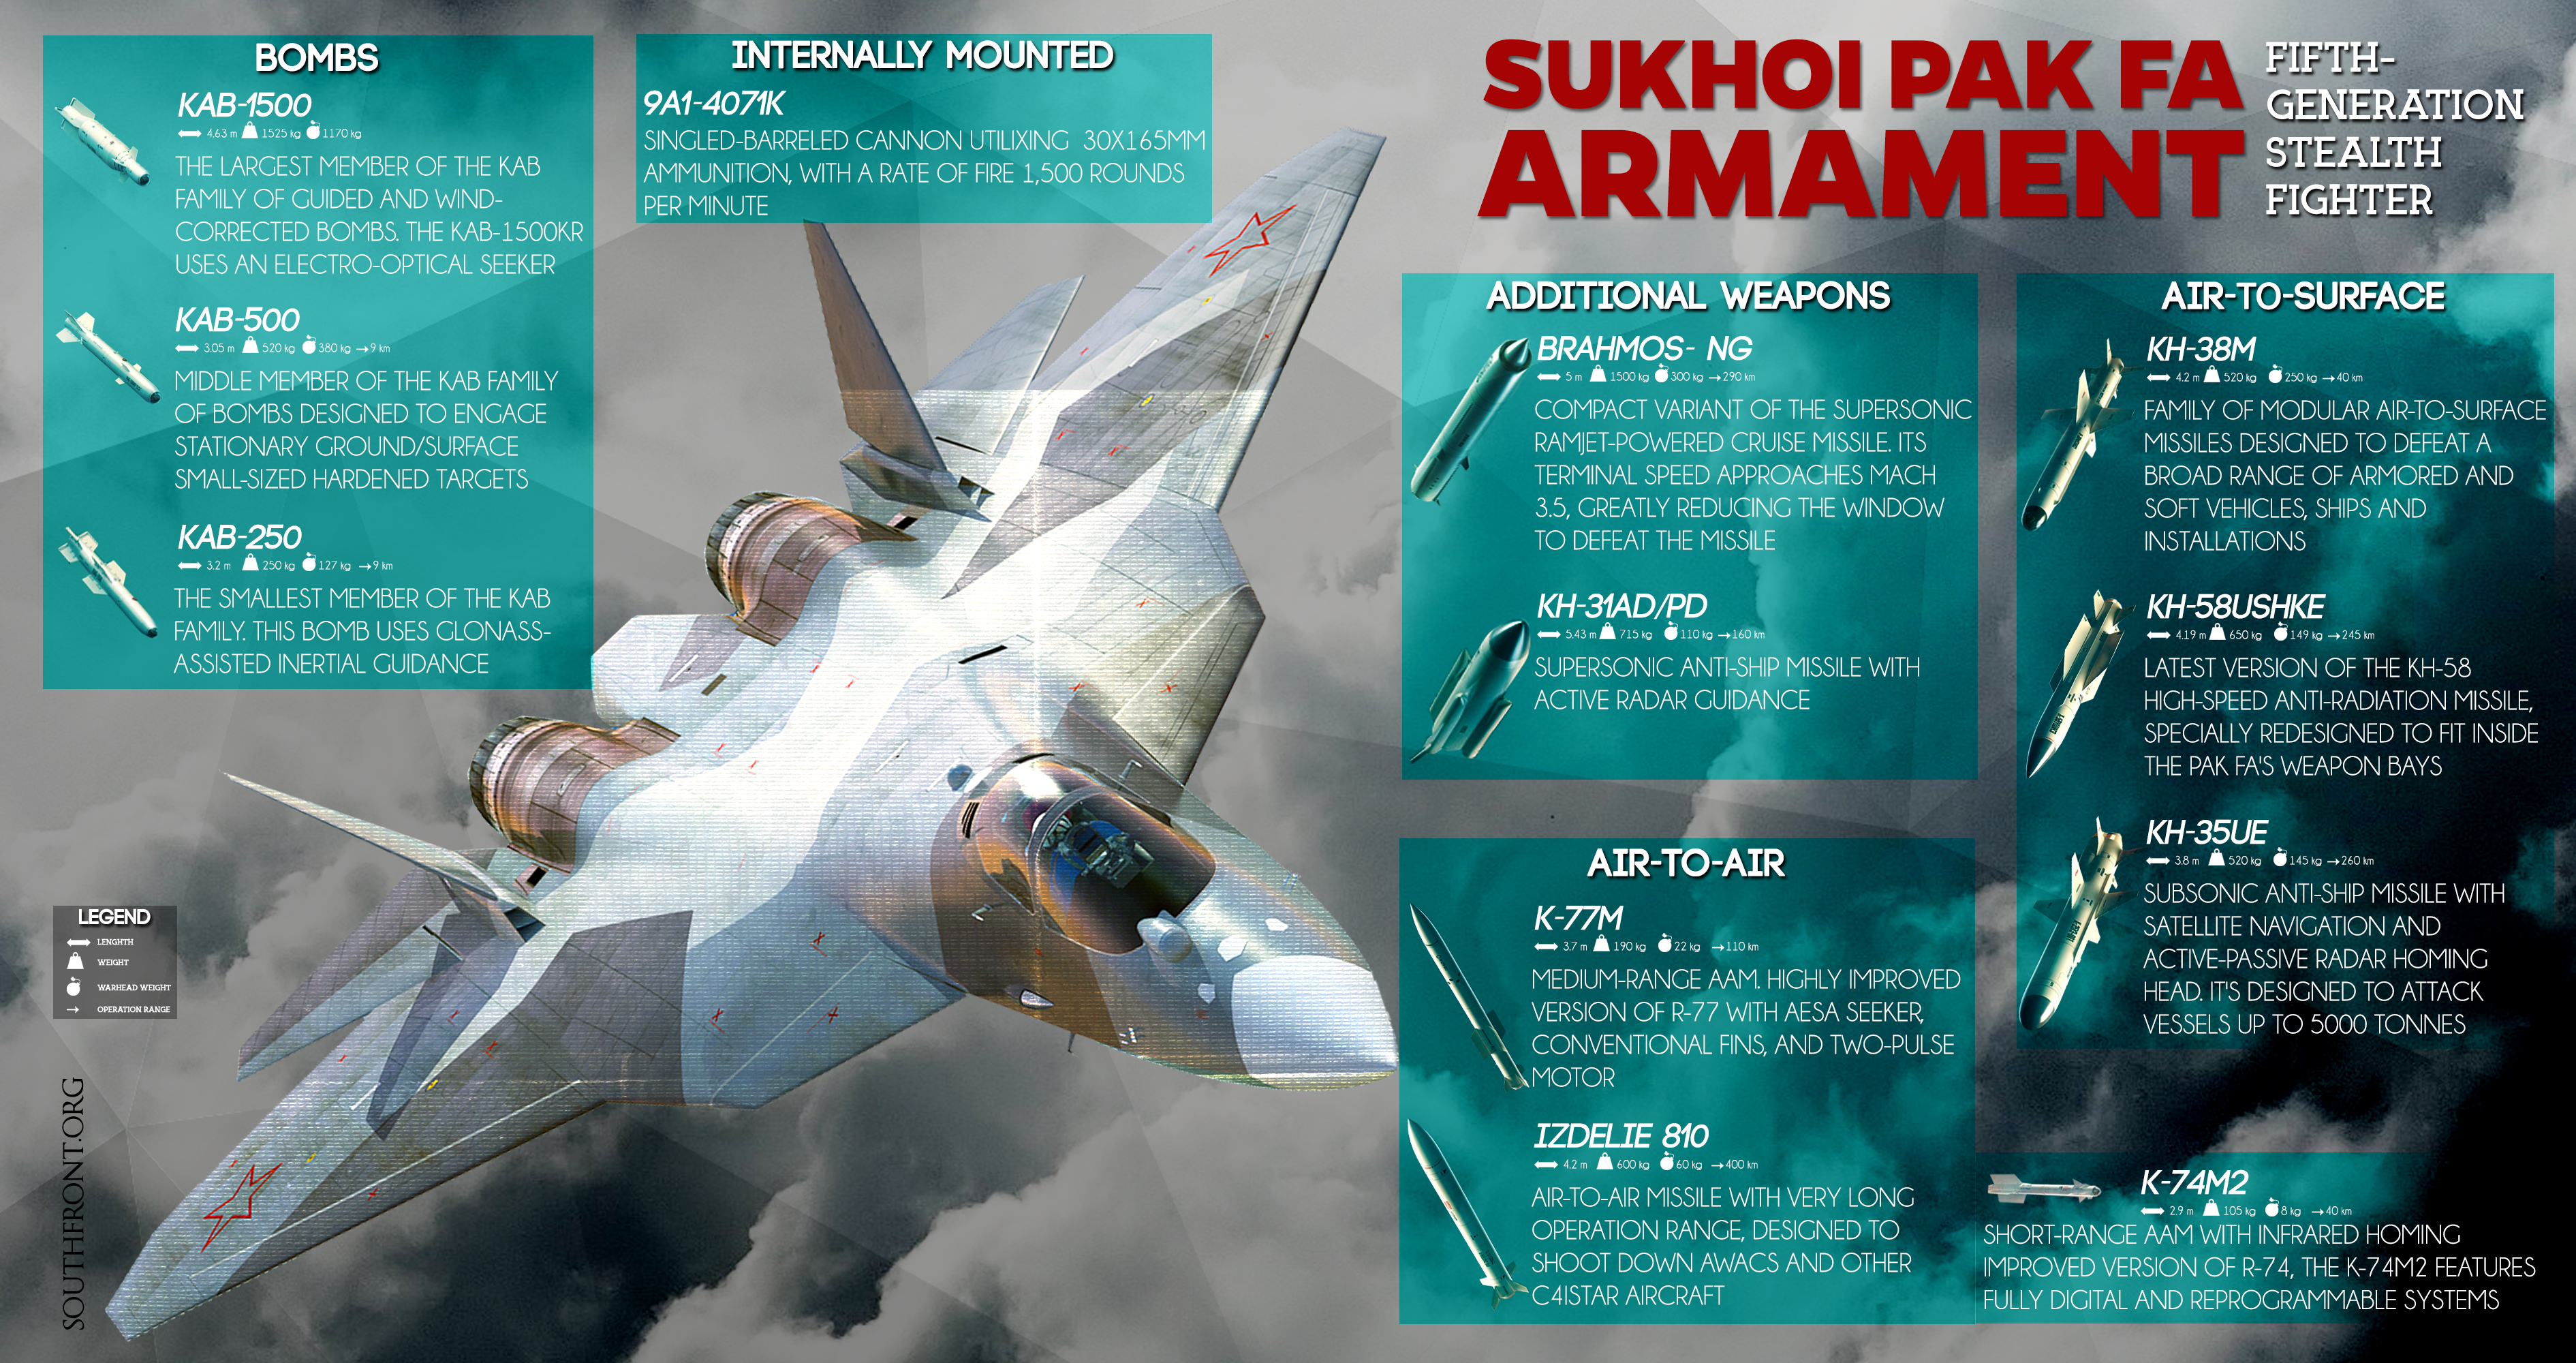 Russian Sukhoi PAK FA Fifth-generation Stealth Fighter's Armament (Infographics)